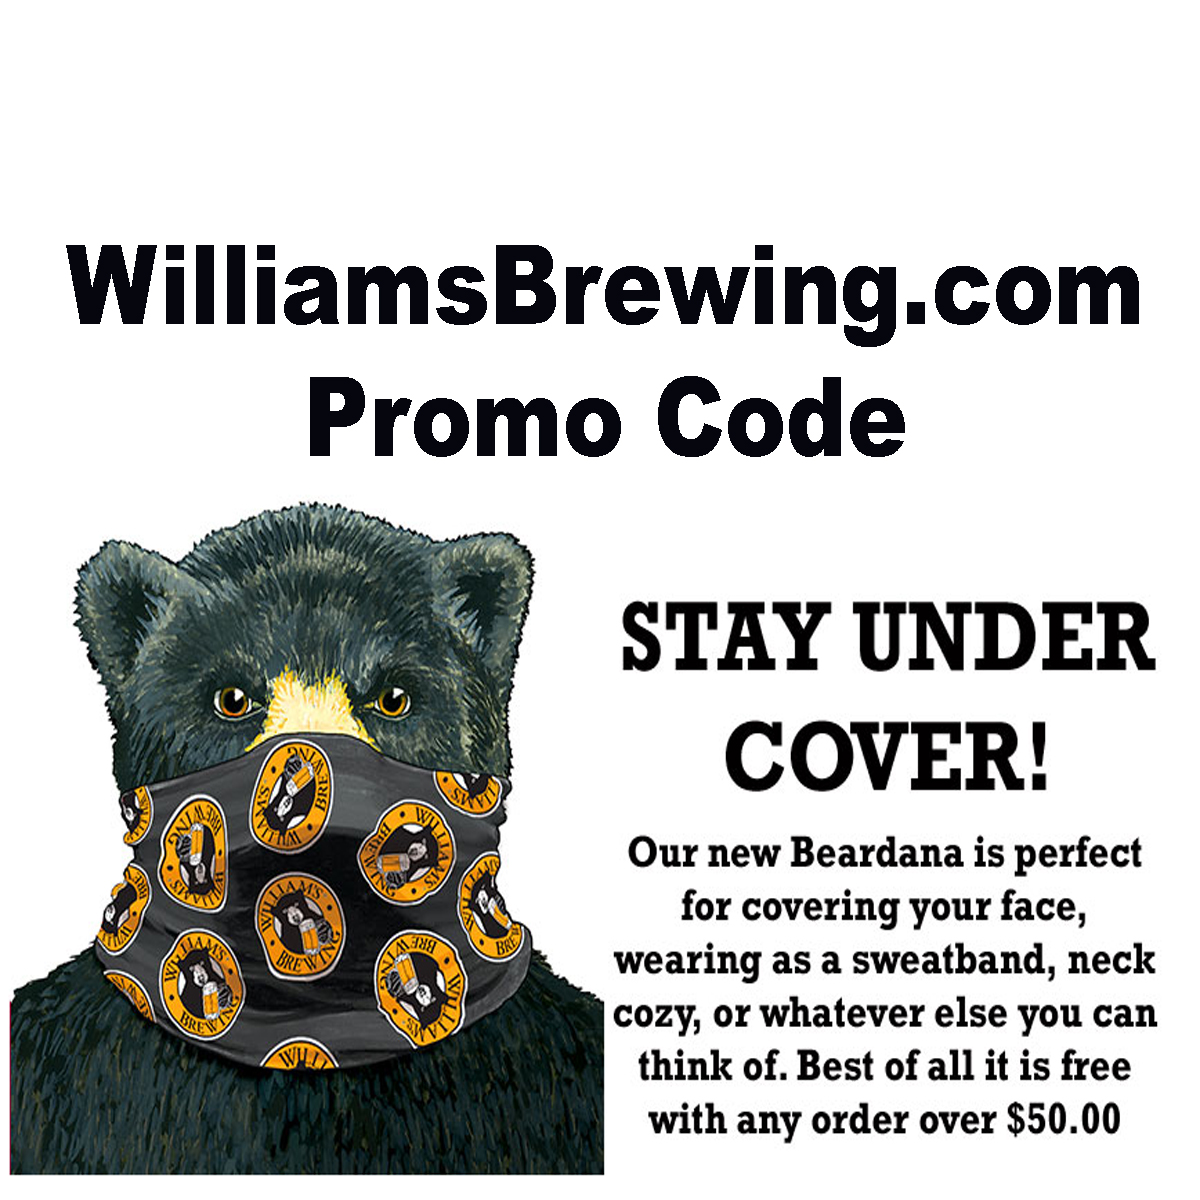 Williams Brewing Spend $50 at Williams Brewing and get a FREE BEARDADA with this WilliamsBrewing.com Coupon Code for August 2020 Coupon Code